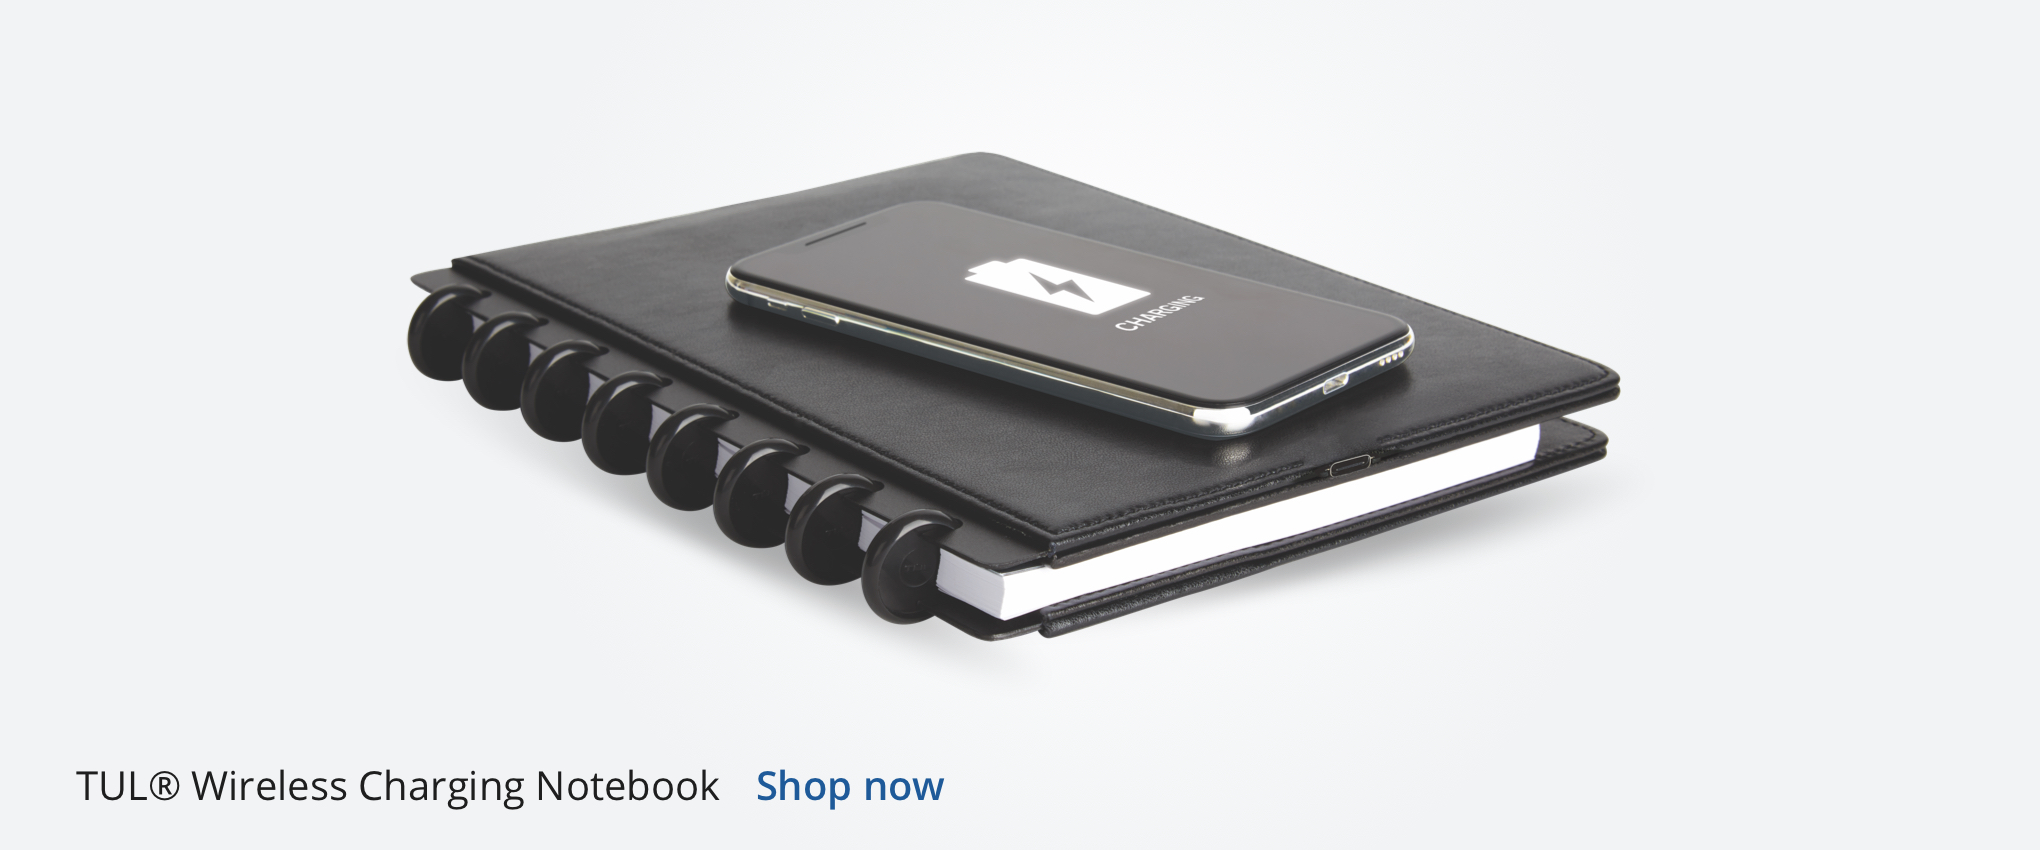 TUL Wireless Charging Notebook